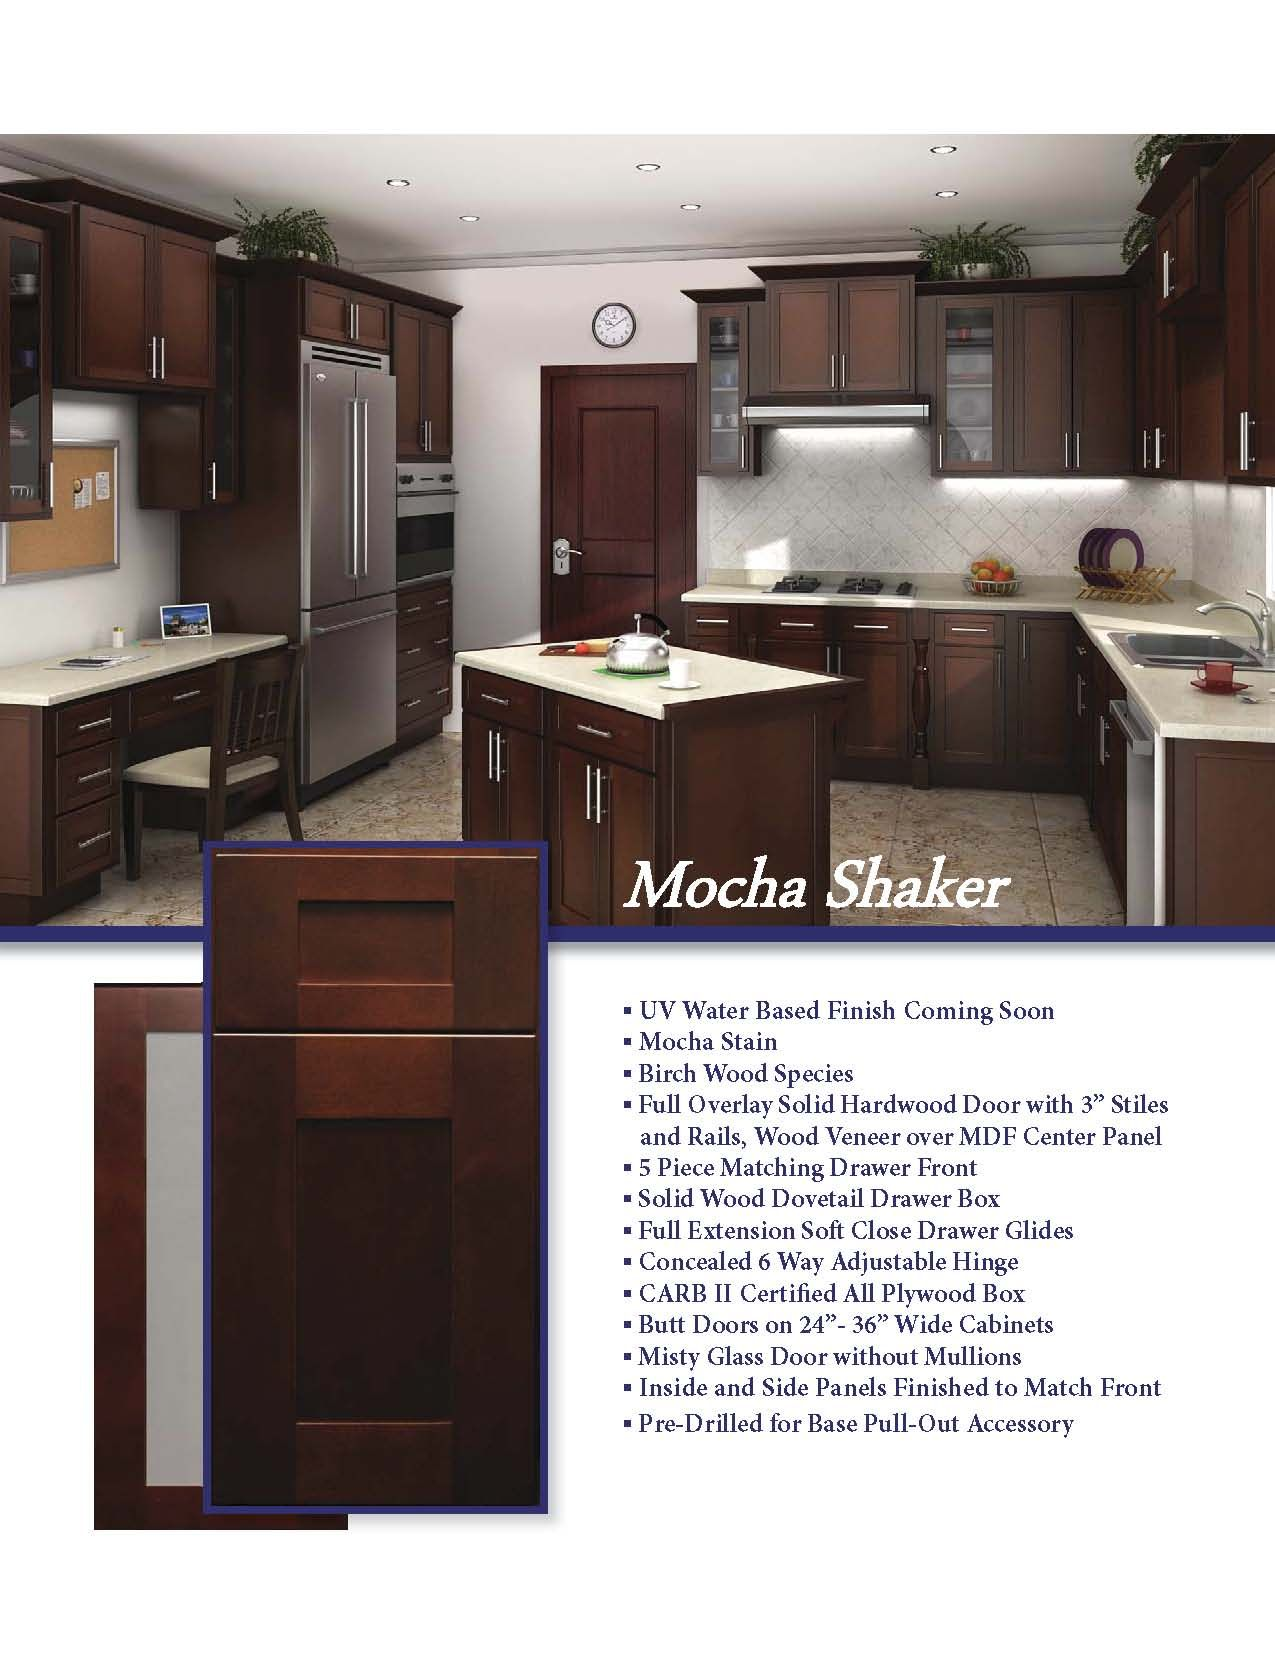 Kitchen Cabinets Quality Wood Cabinets At Discounted Prices Kitchen Cabinets Shaker Kitchen Cabinets Rta Kitchen Cabinets